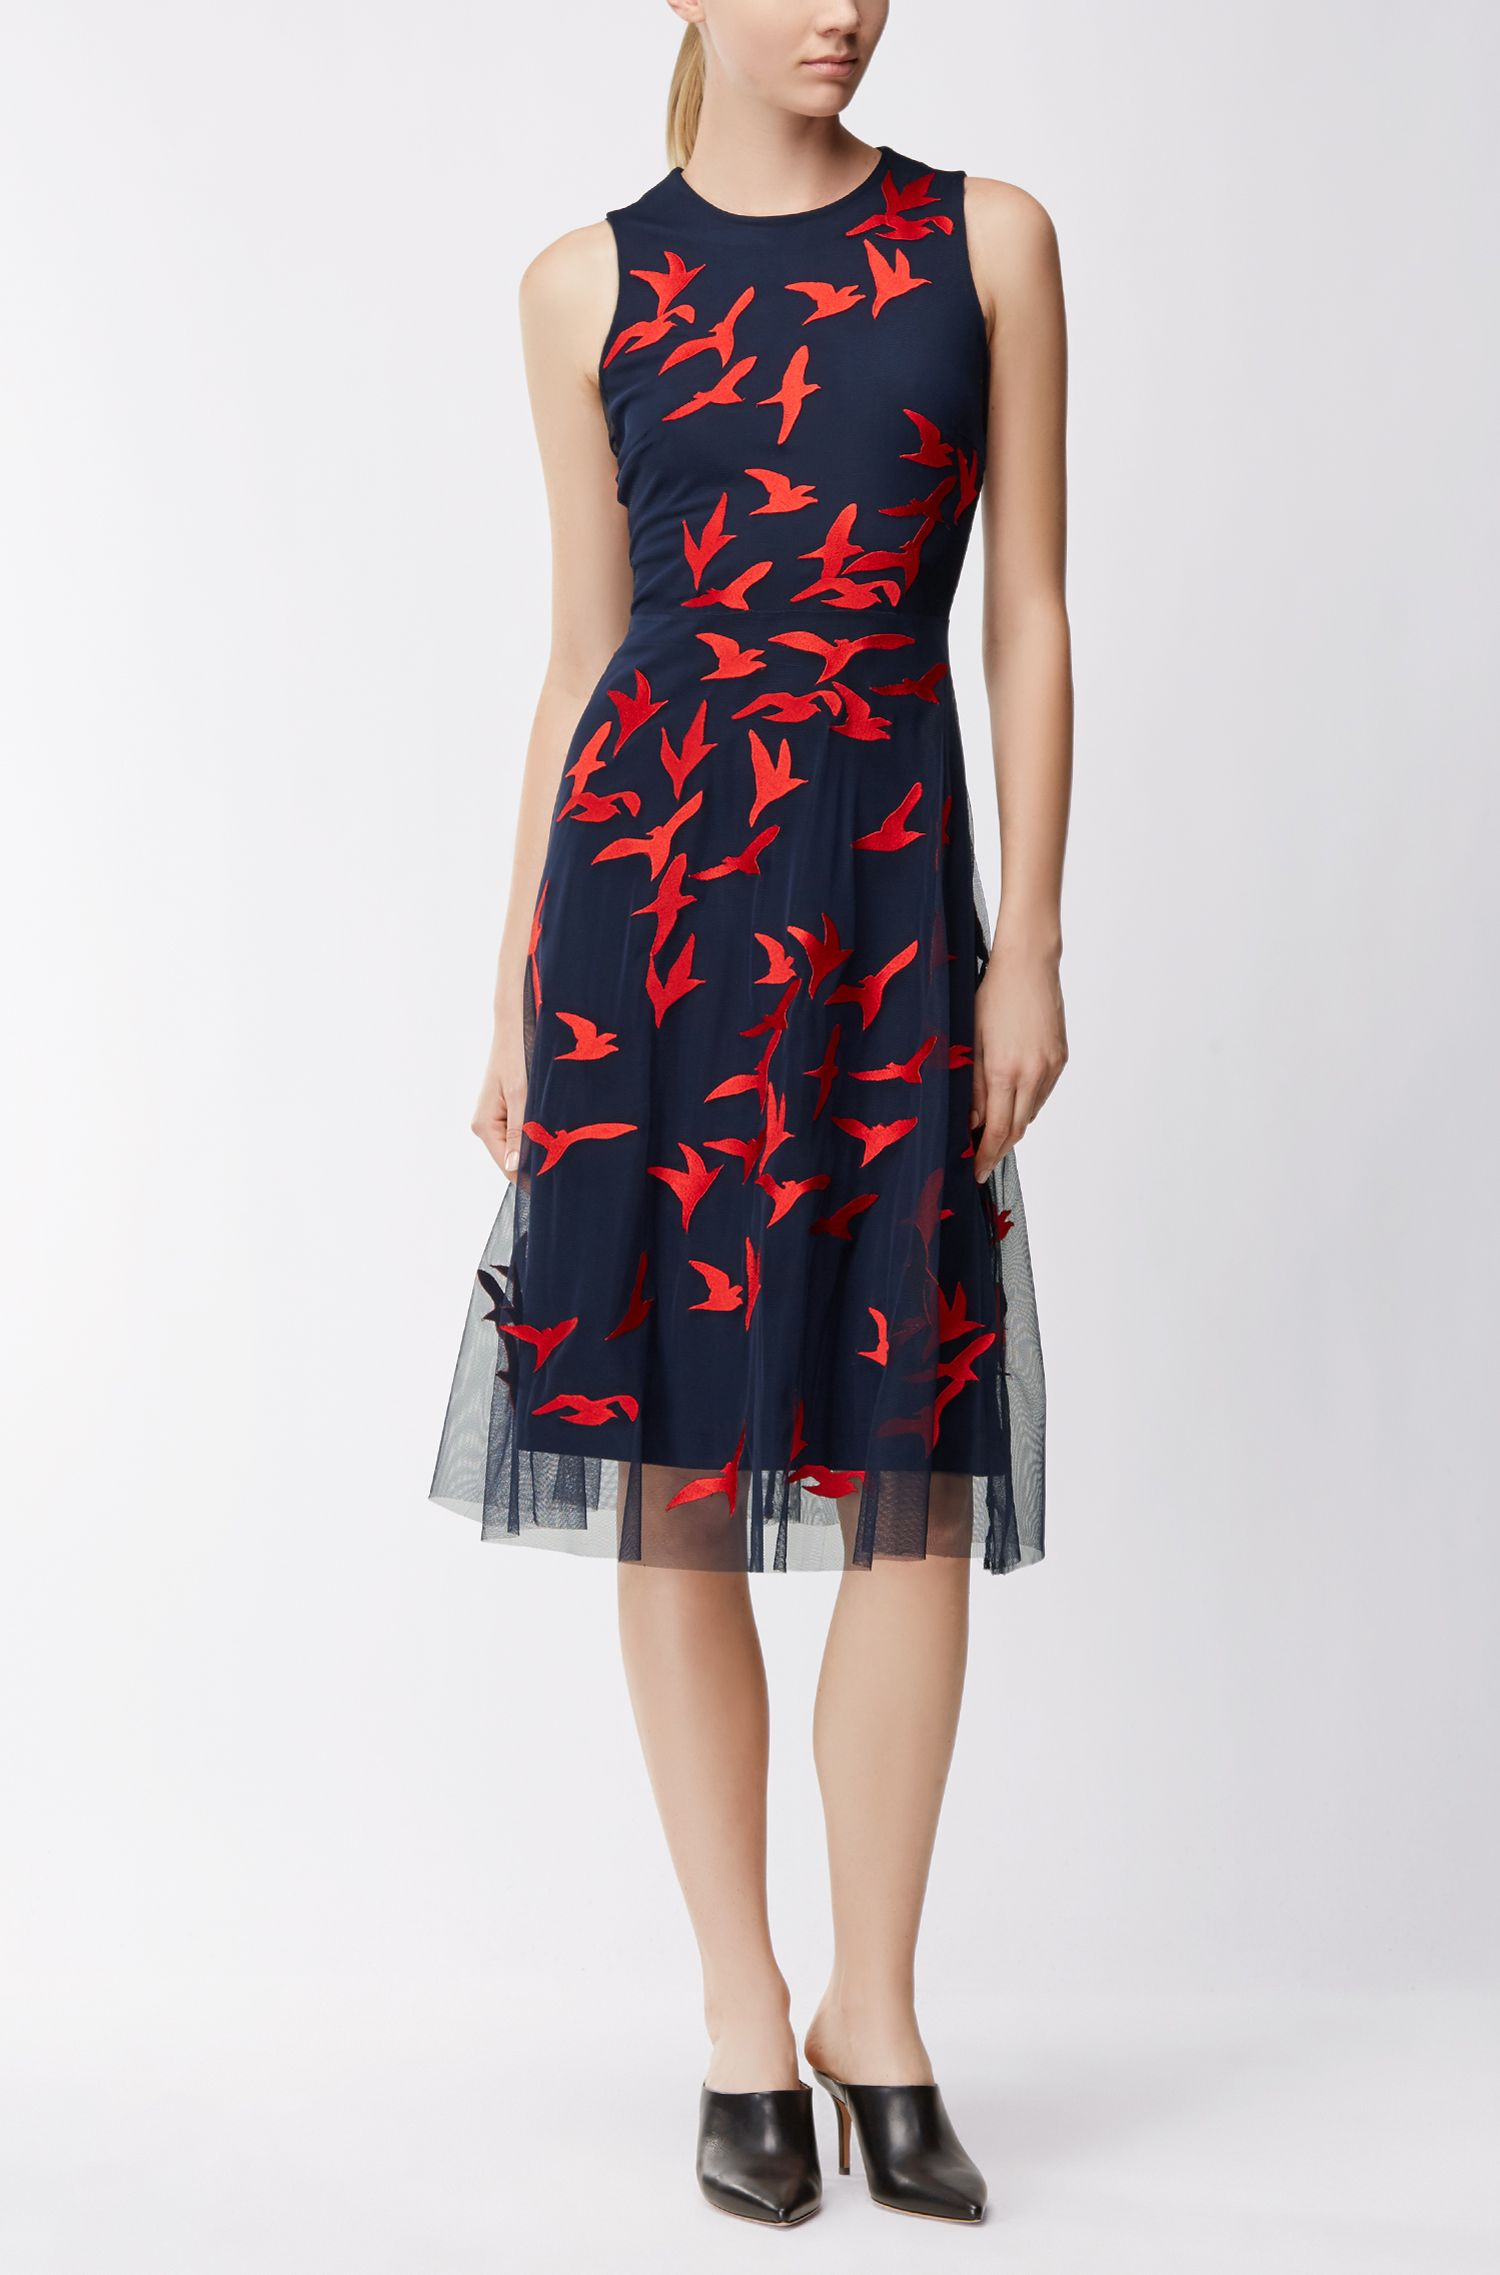 Bird Print Dress | Enerva, Patterned